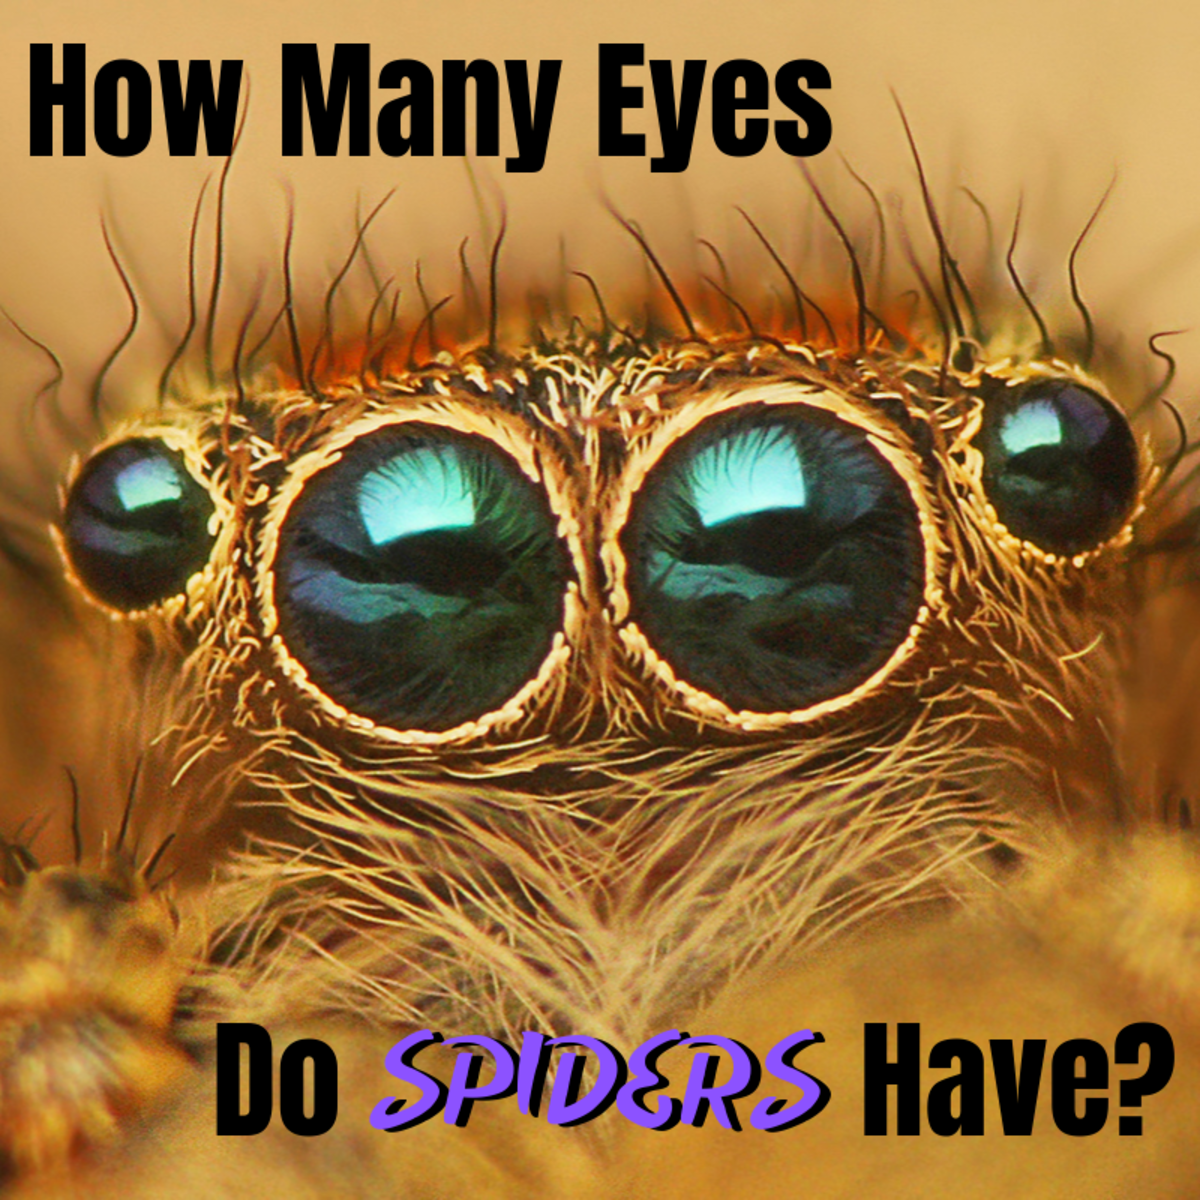 Most people think that spiders have eight eyes, but is this really the case?